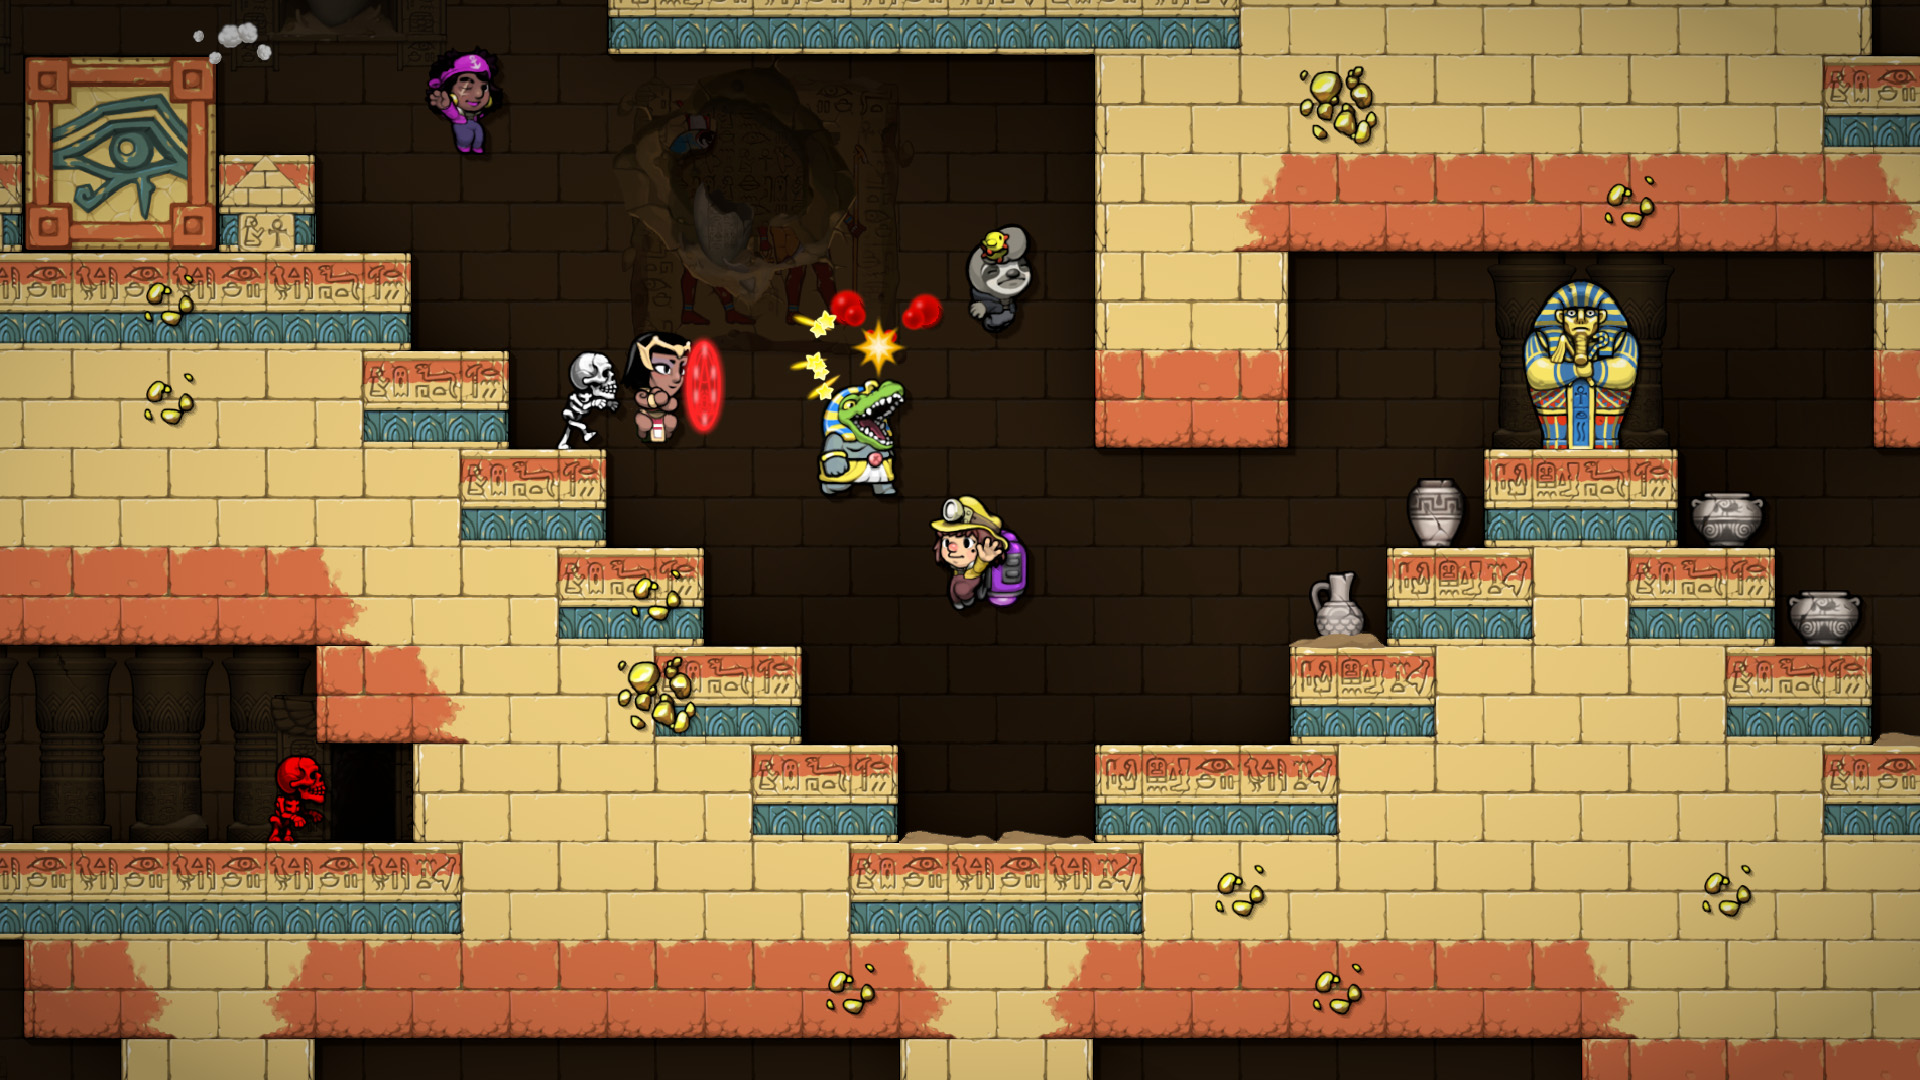 Spelunky 2 Image 1